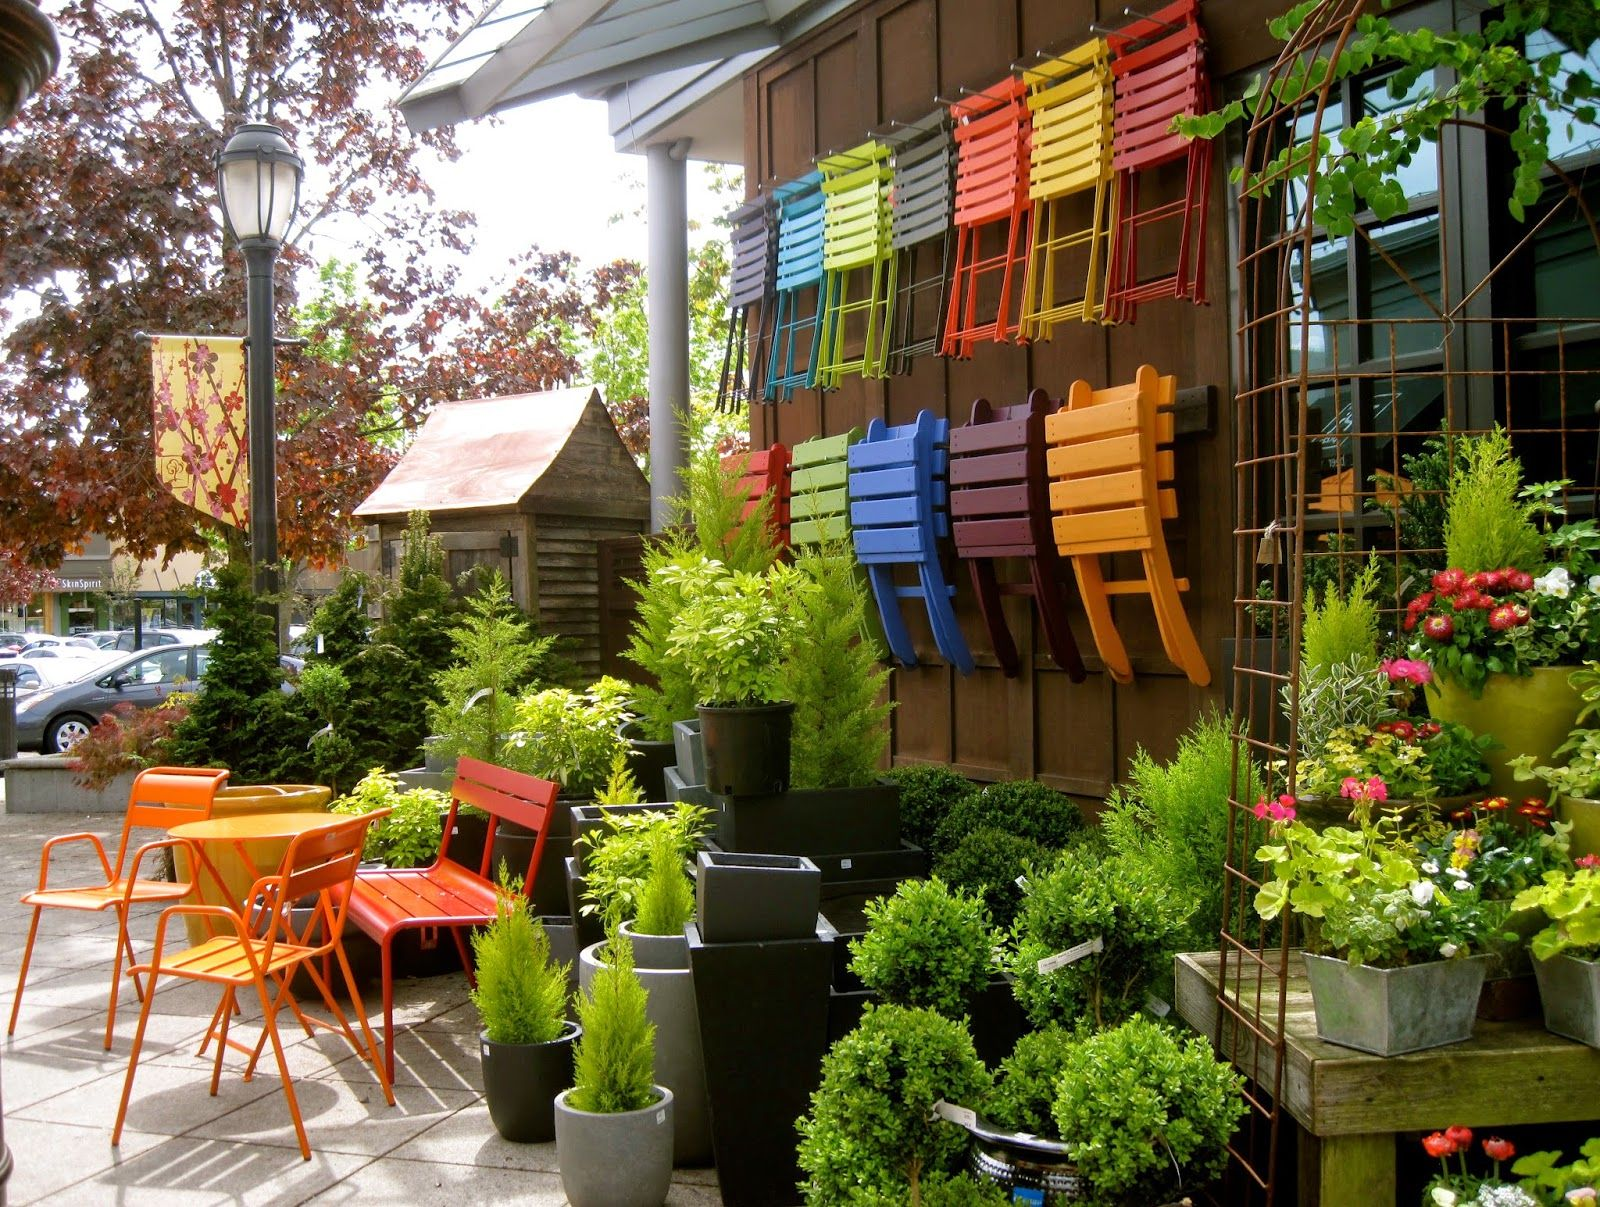 A Visit To Ravenna Gardens With Images Garden Center Displays